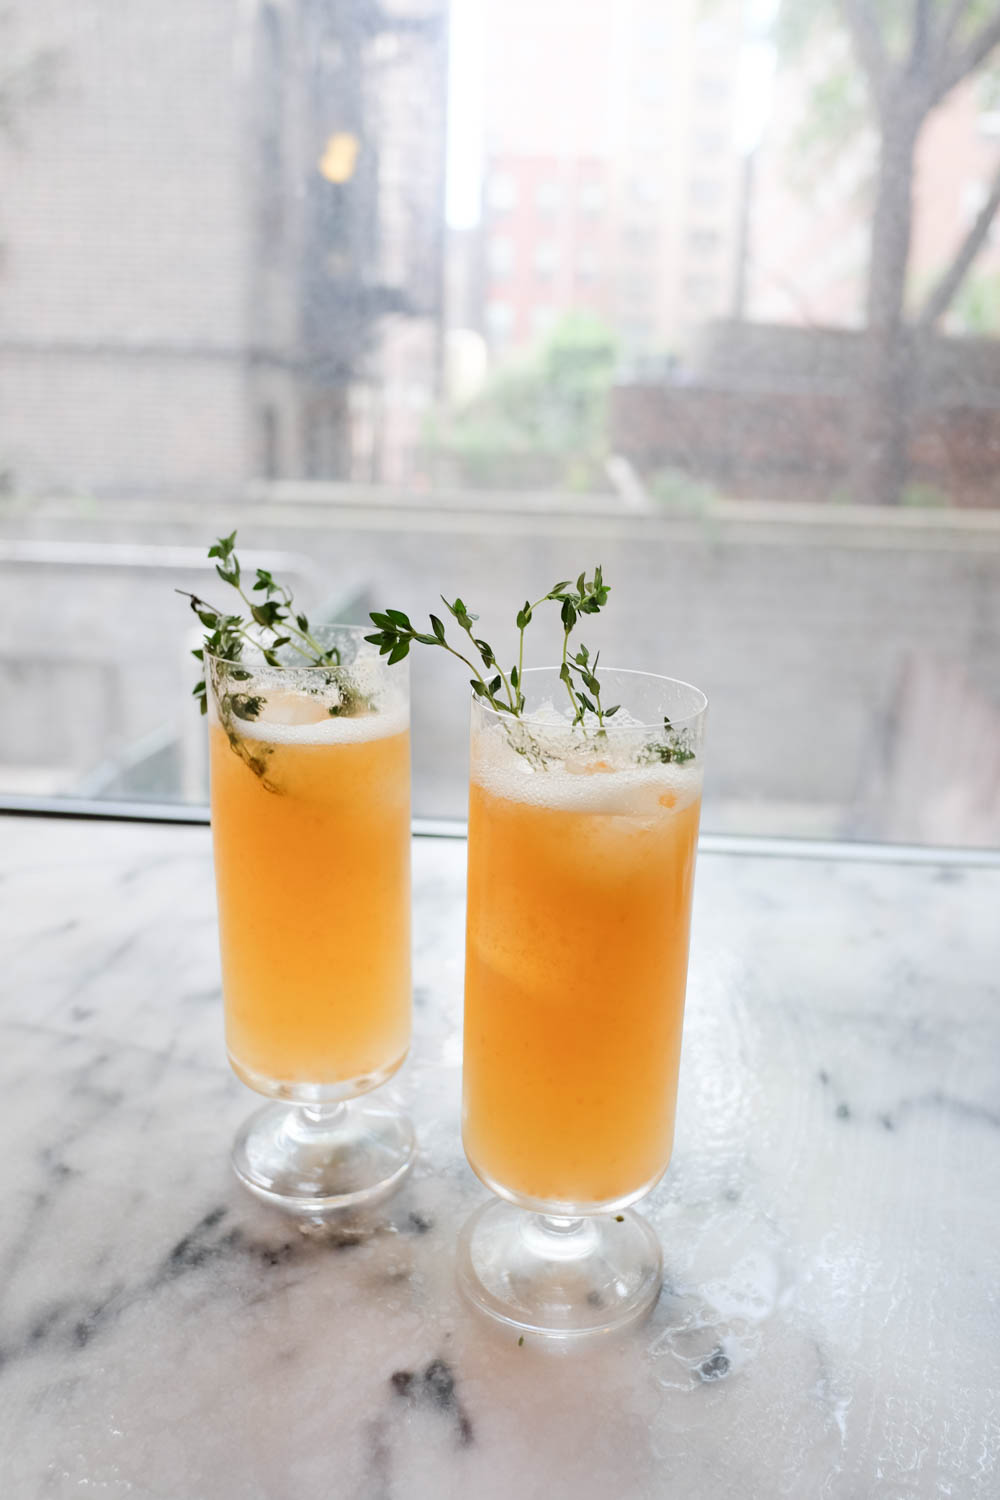 mikes hard lemonade brunch cocktail recipes 5